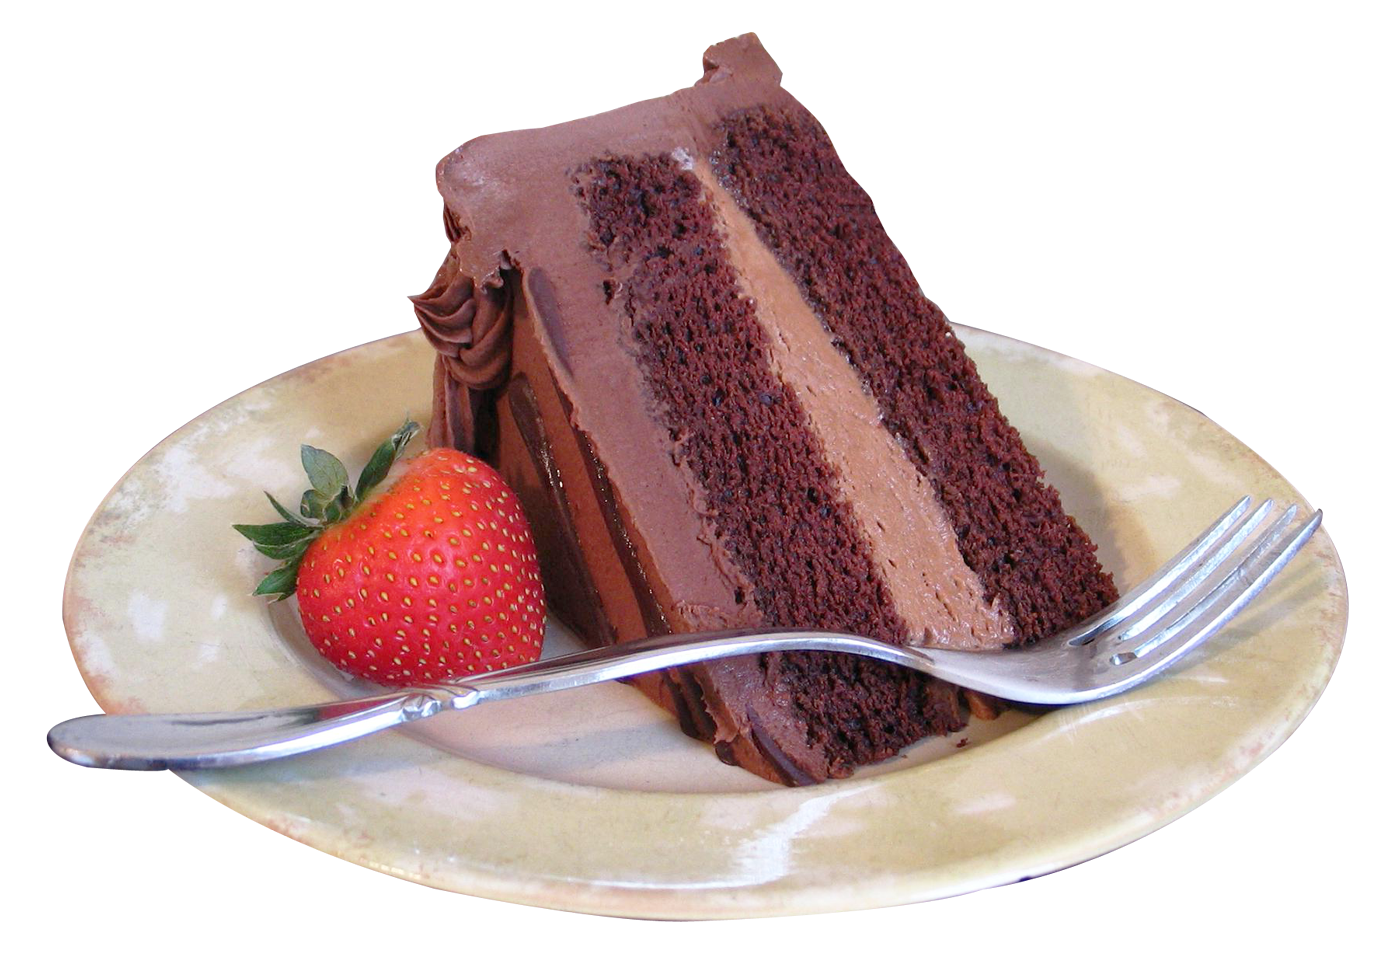 PNG Slice Of Cake-PlusPNG pluspng.com-1400 - PNG Slice Of Cake - Slice Of Cake PNG HD